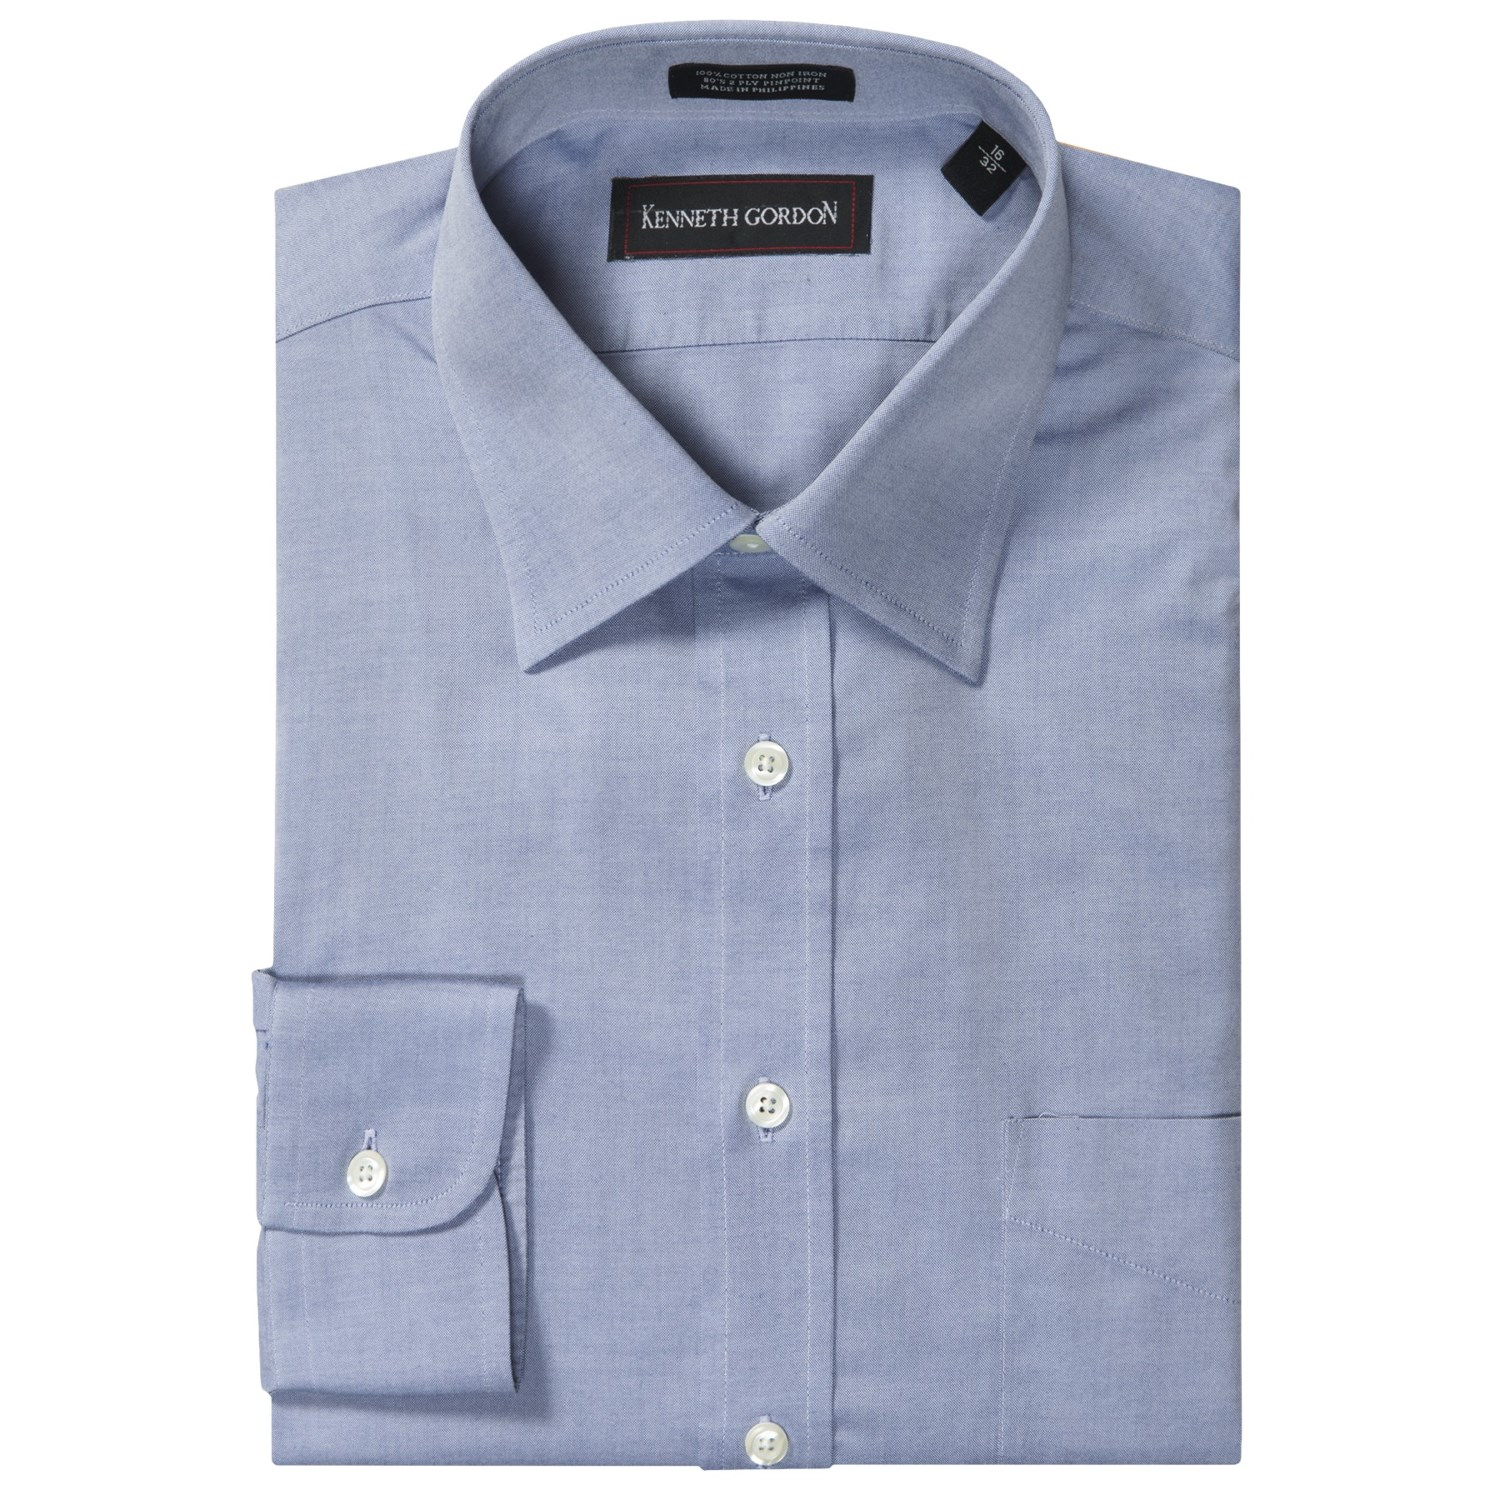 Enjoy free shipping and easy returns every day at Kohl's. Find great deals on Mens No-Iron Dress Shirts Clothing at Kohl's today!